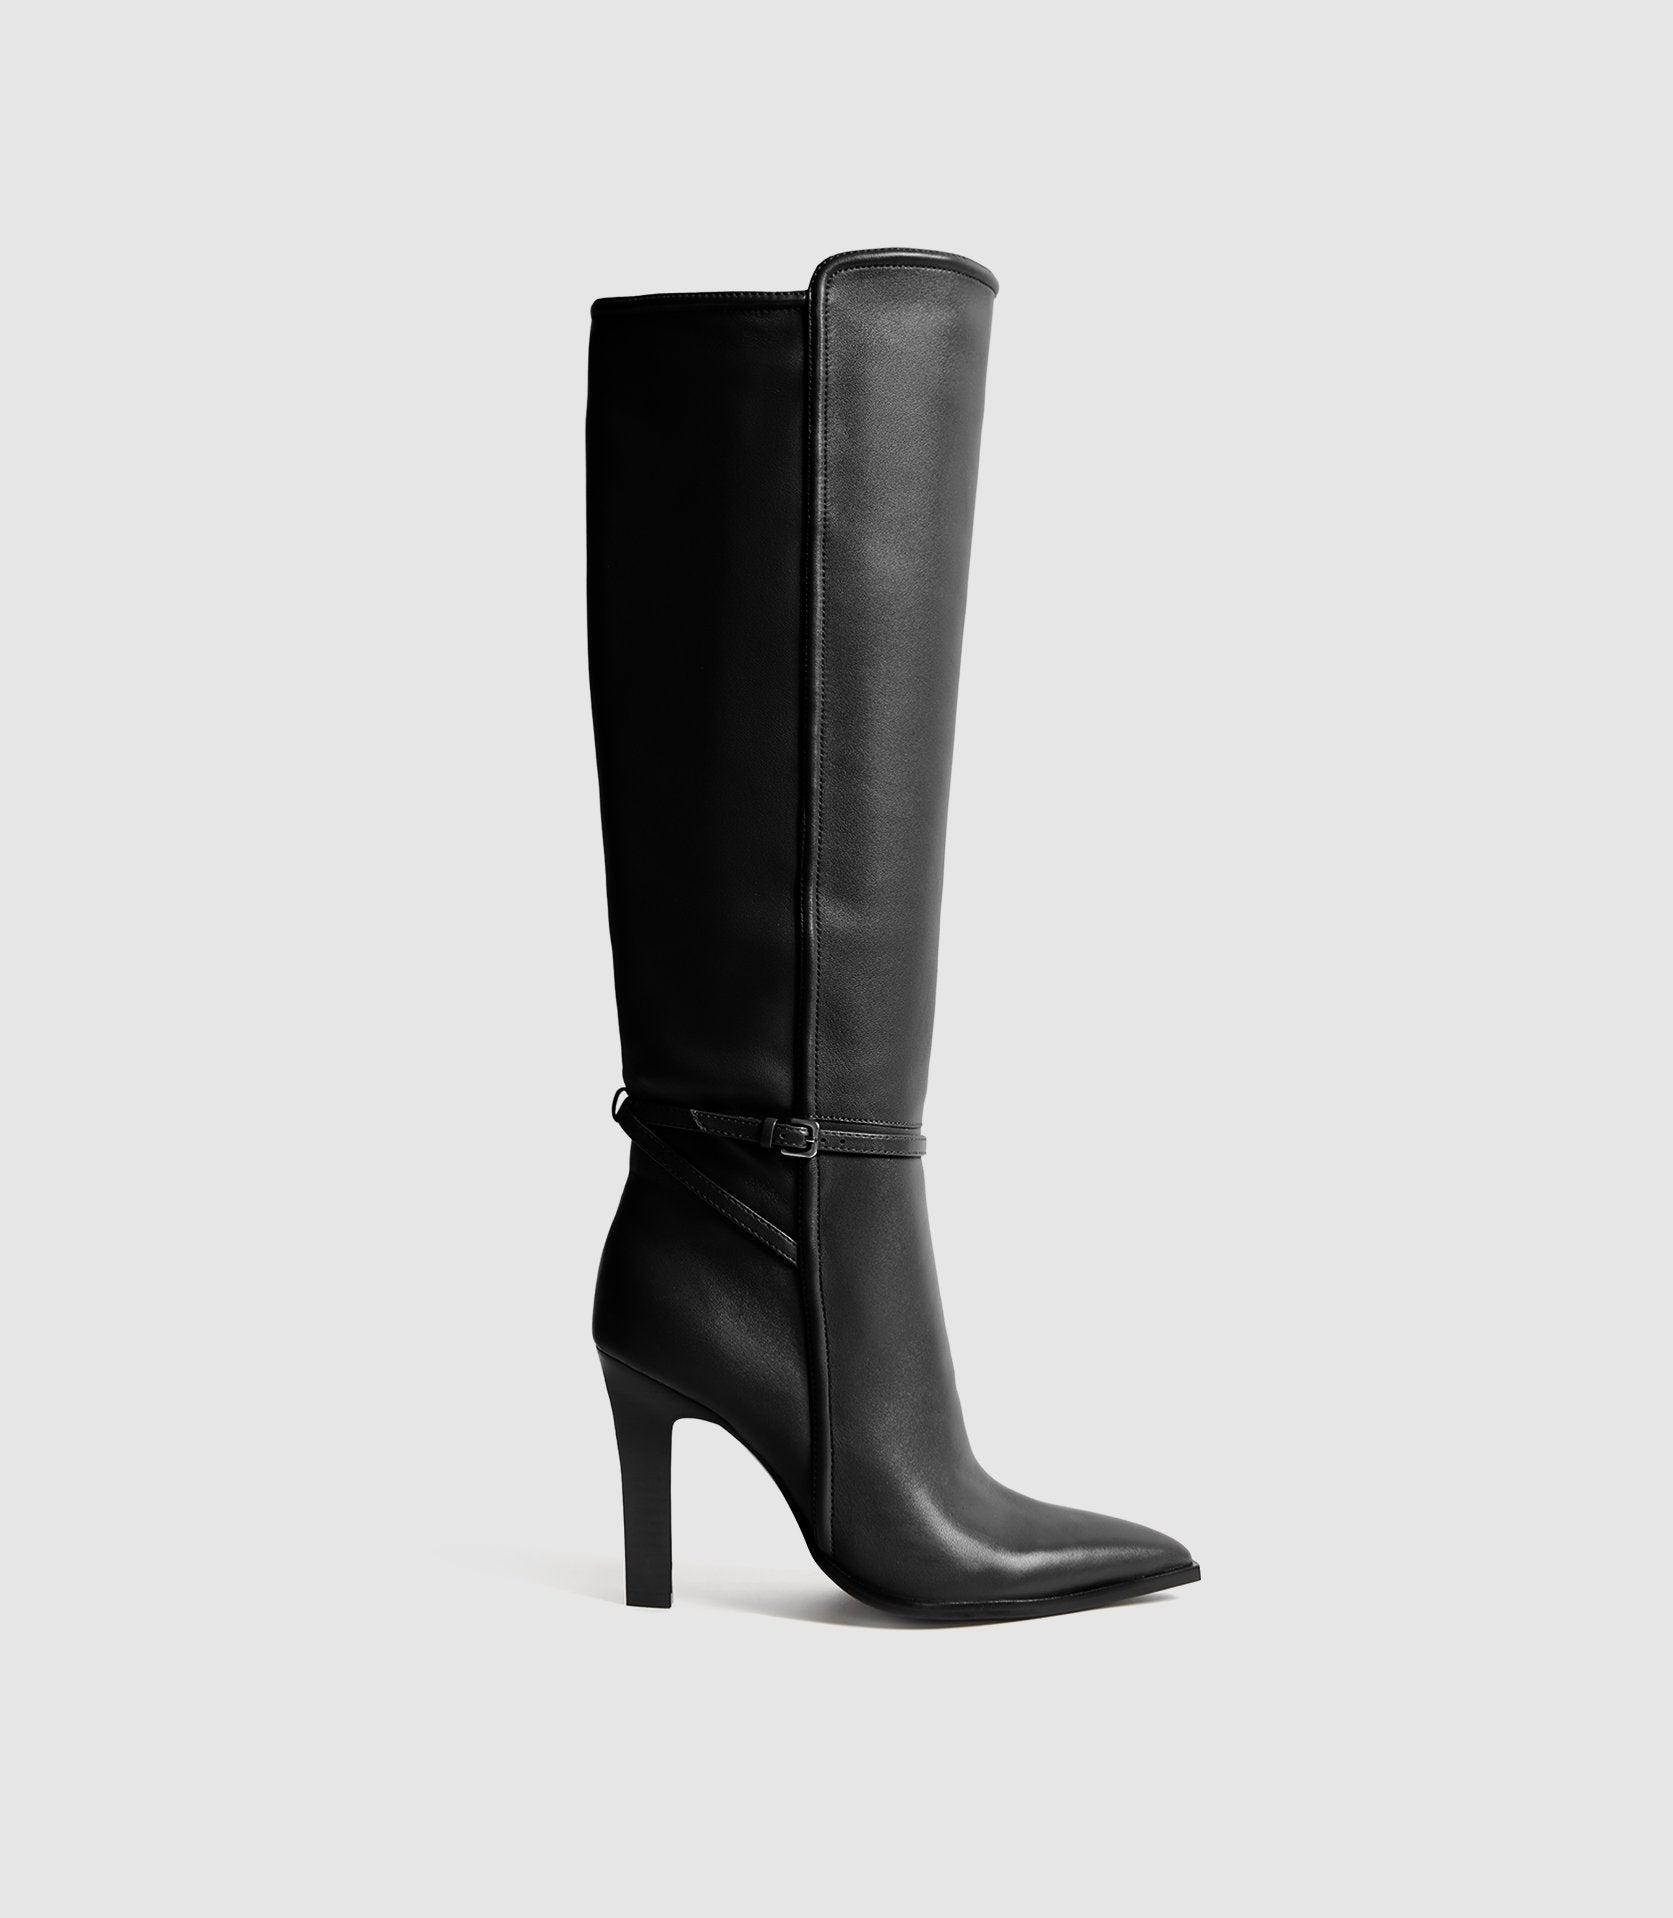 ADA - KNEE-HIGH LEATHER BOOTS